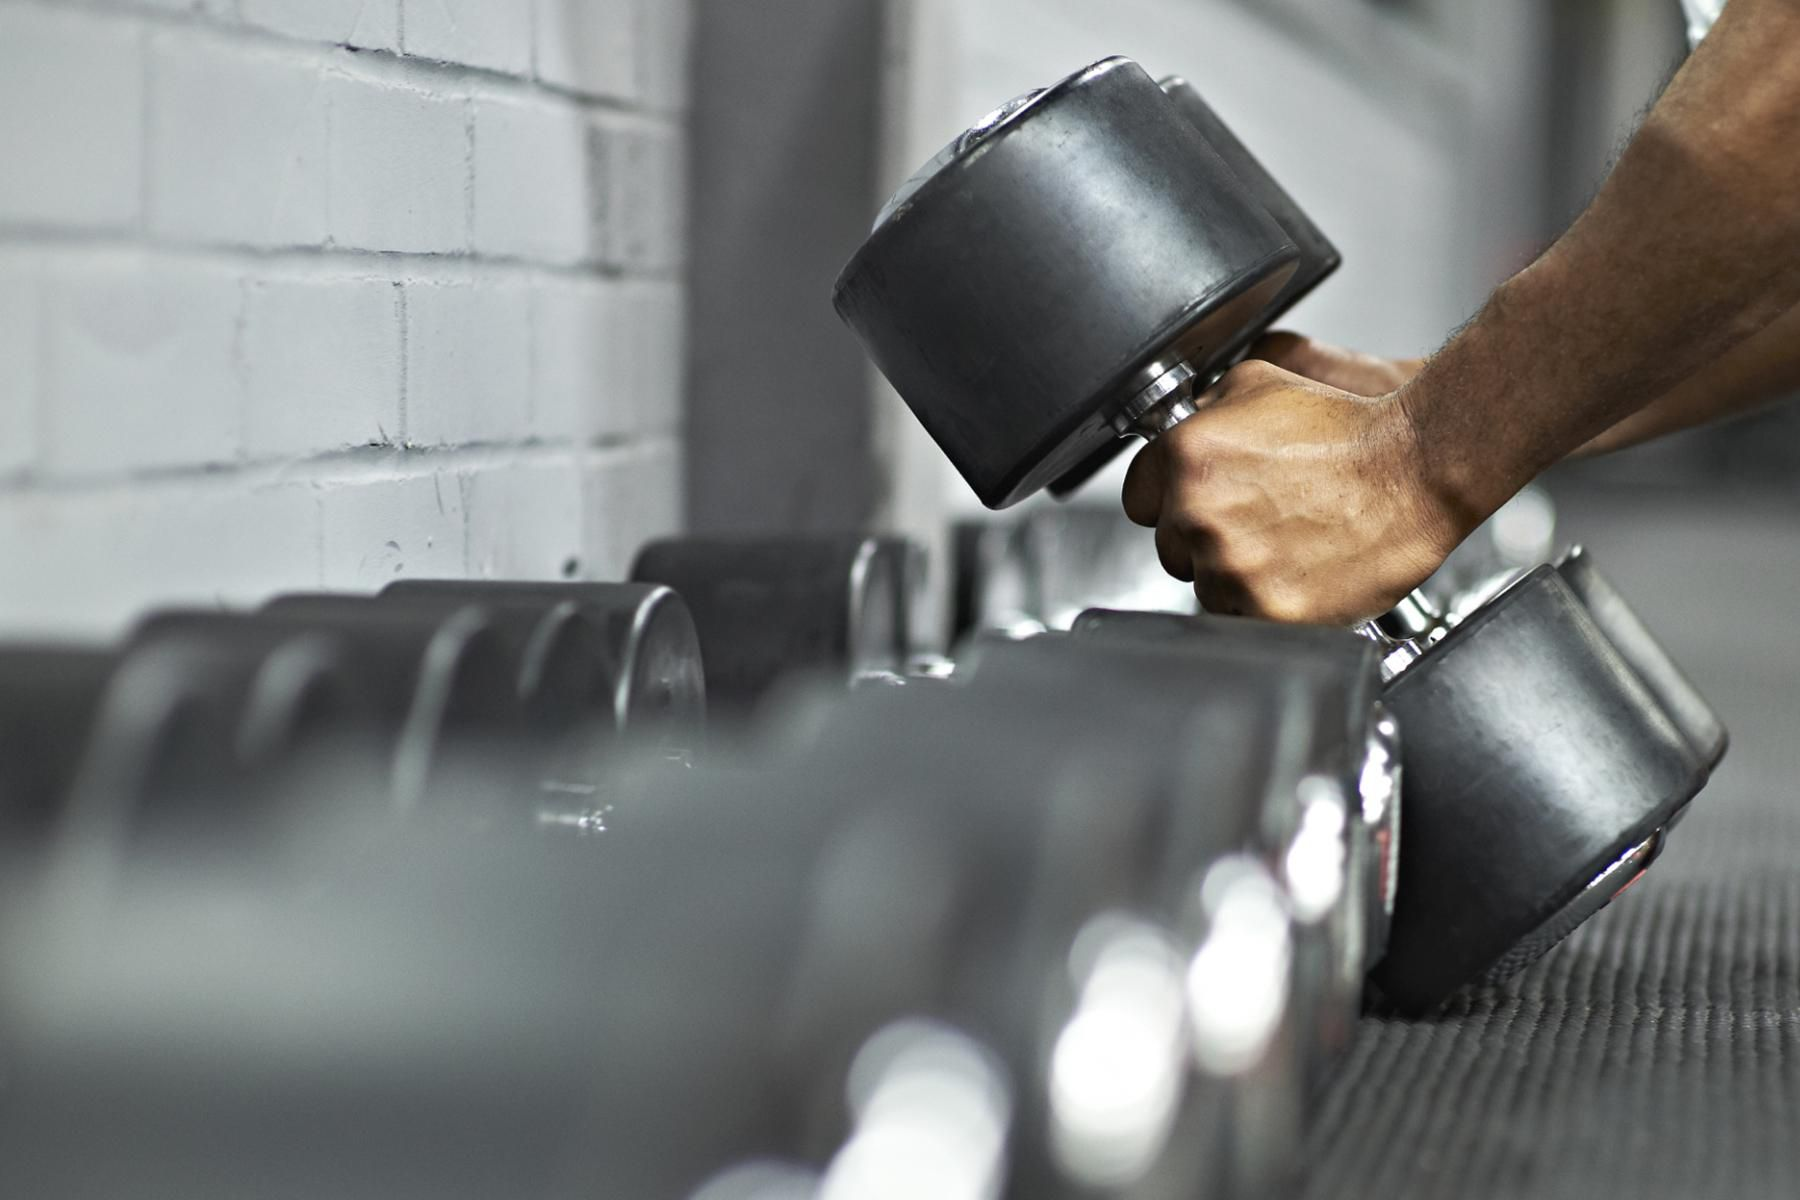 Getting Started - Bodybuilding for Beginners